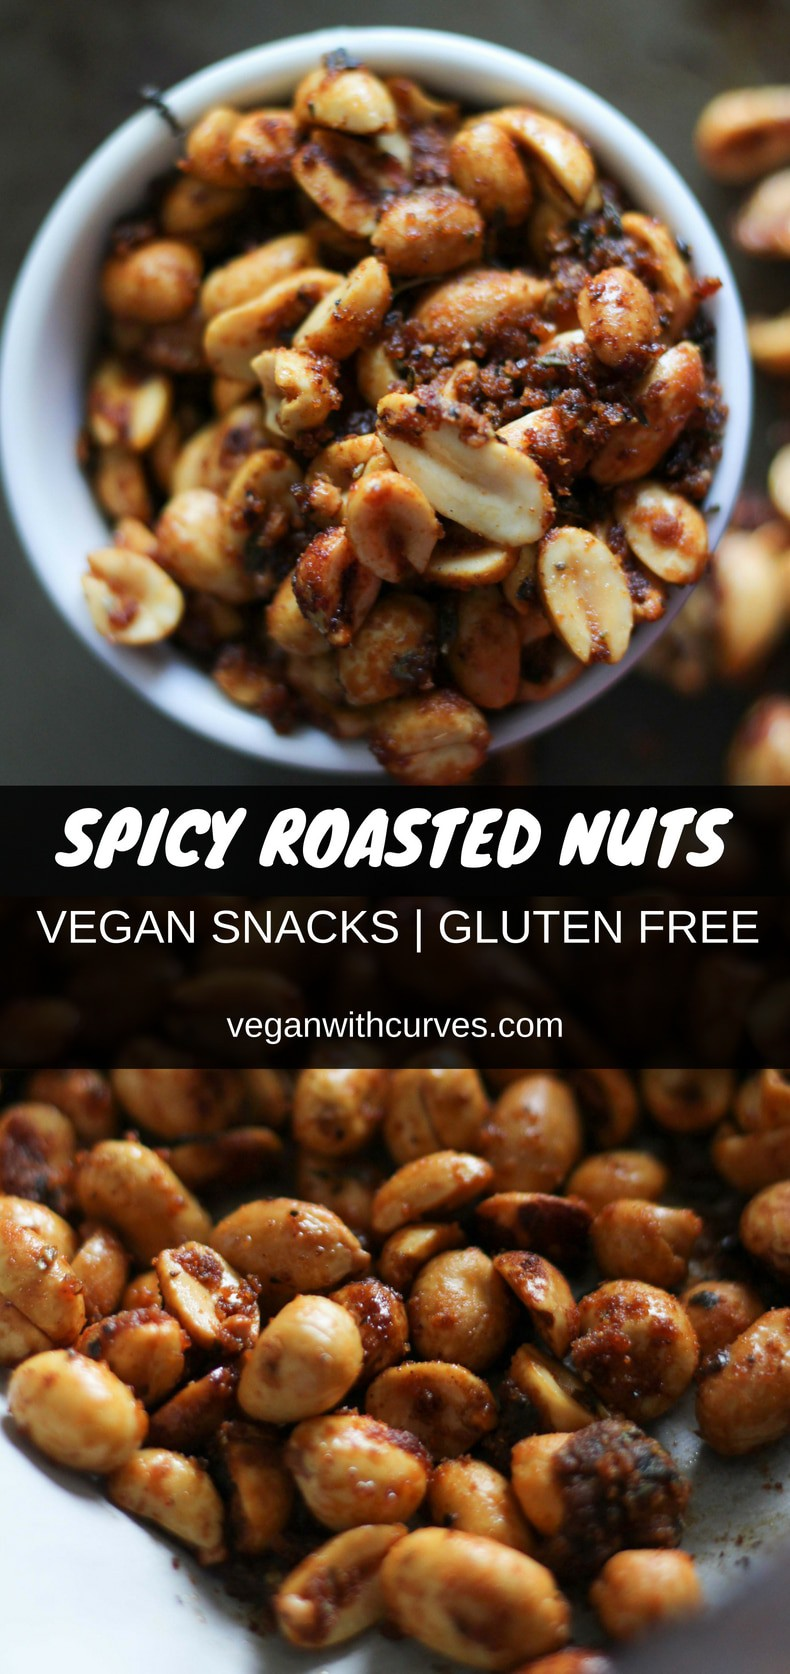 Spicy roasted nuts that are so simple and easy to make. With only 5 ingredients, this  gluten free vegan snack is ready in 15 minutes. Eat as is or top on salads! Also perfect for your game day events! #easy #vegansnack #vegan #veganrecipes #makeahead #preseason #gameday #backtoschool #peanuts #snacks #dairyfree  #gf #glutenfree